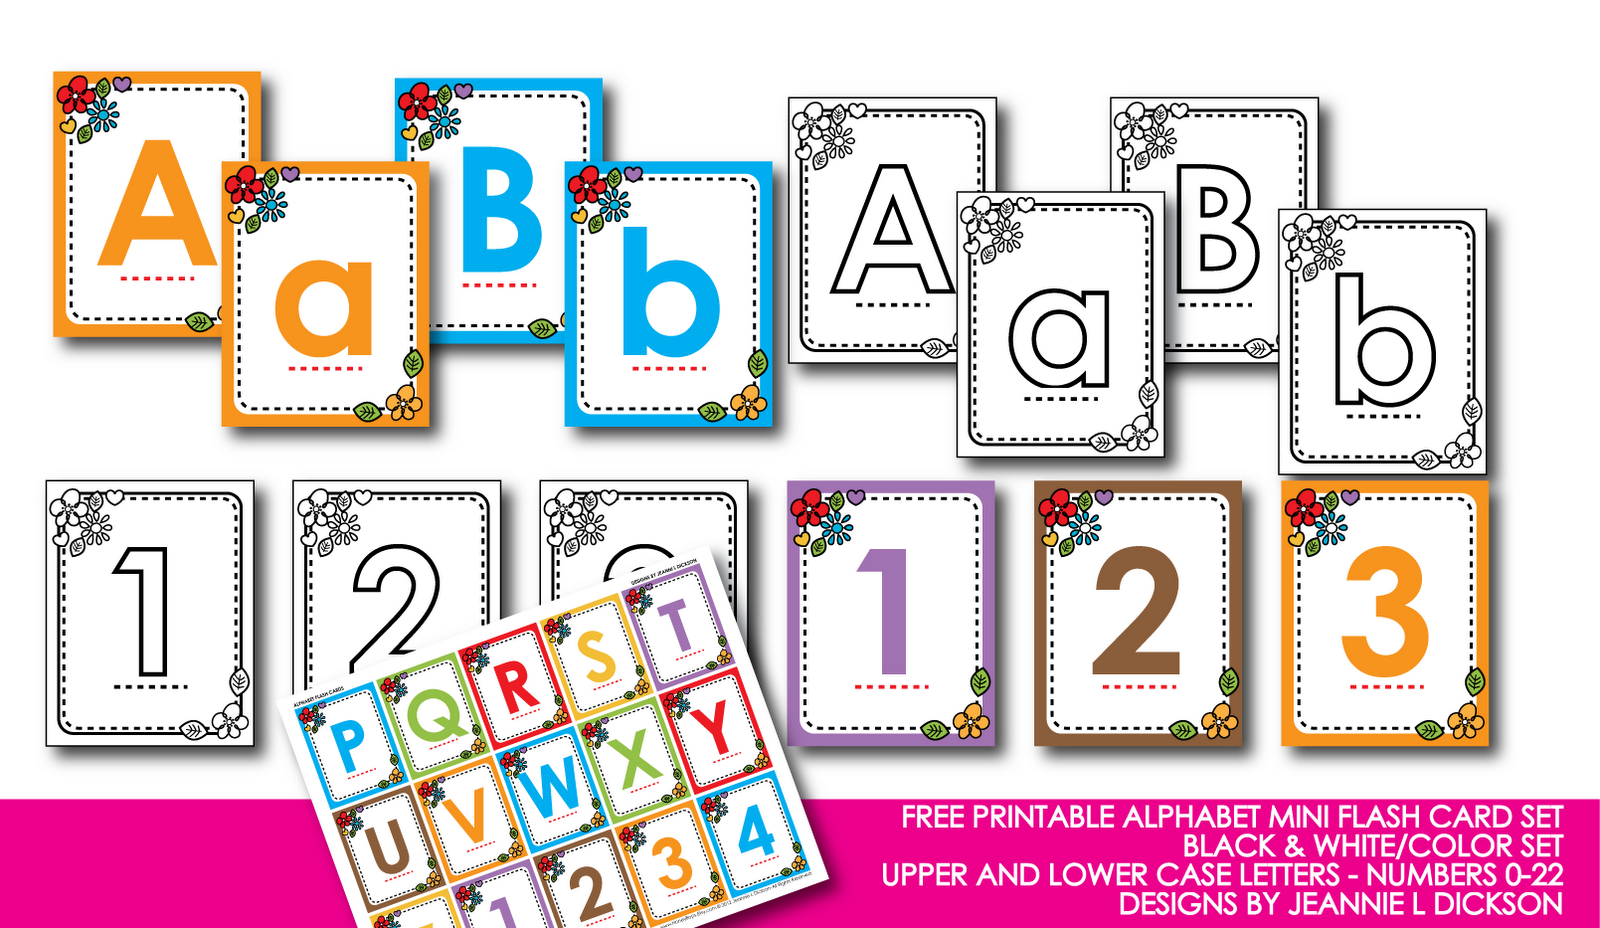 image about Free Printable Abc Flash Cards known as Absolutely free Printable Abc Flashcards With Pics No cost Printable